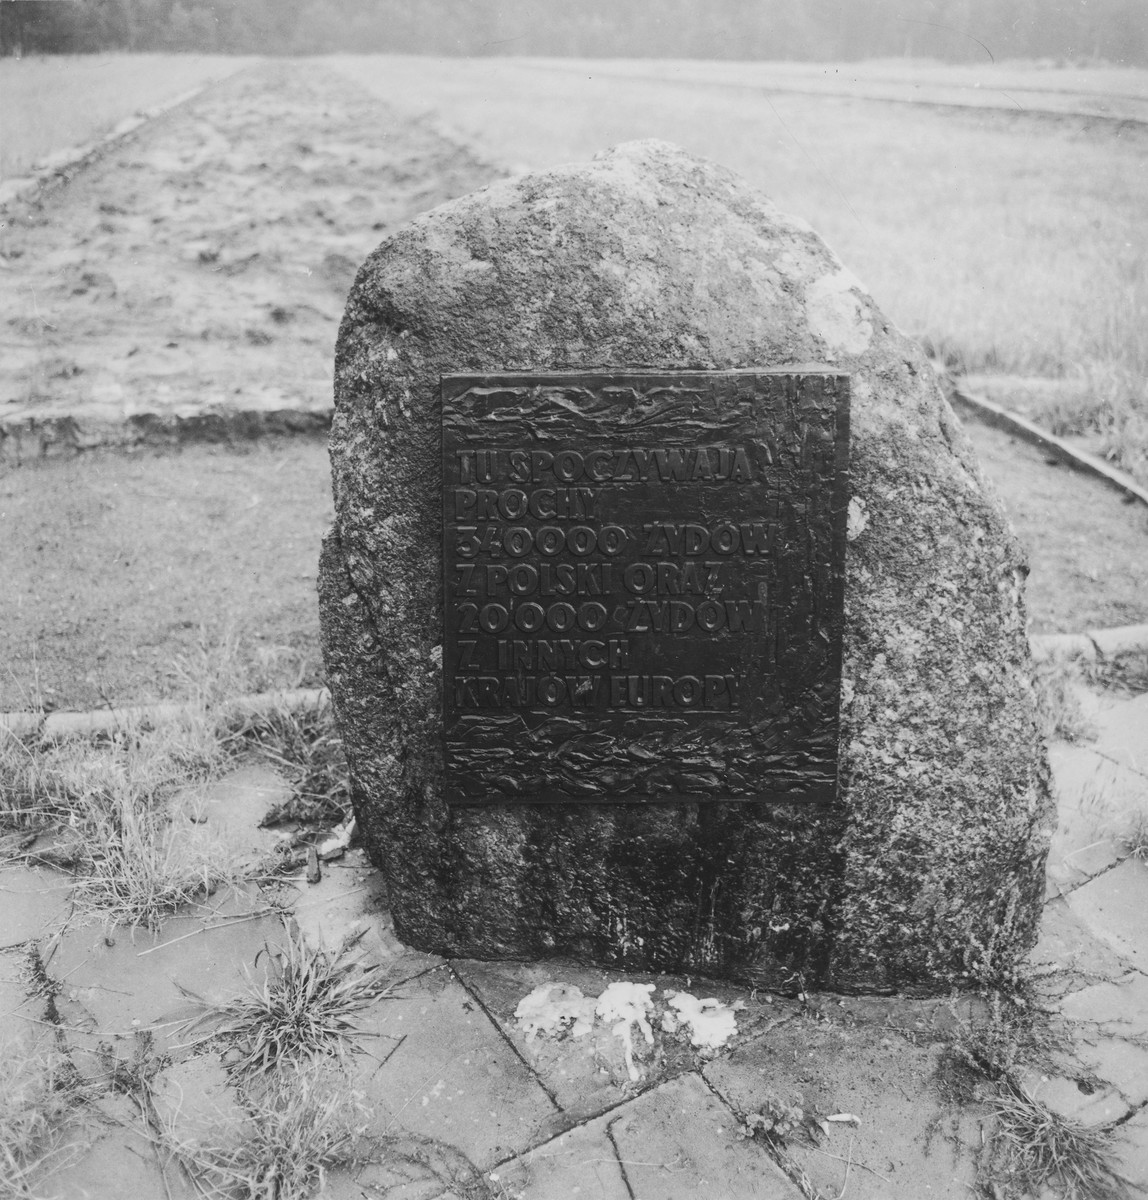 A stone memorial to the 340,000 Polish and 20,000 other Jews murdered in the Chelmno death camp.